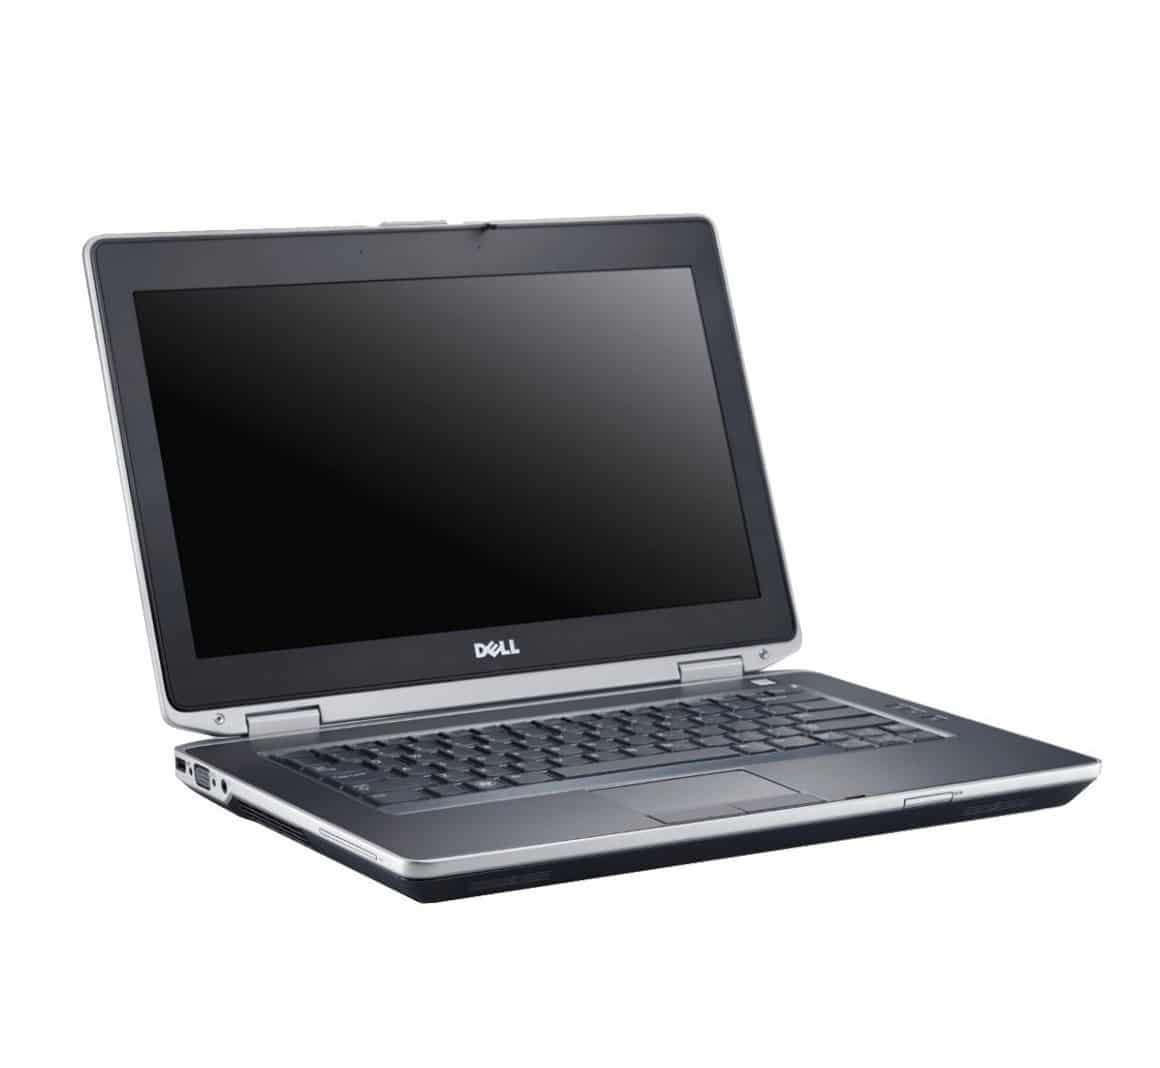 Dell Latitude E6430 Core i5 3230M 4GB RAM 320GB HDD